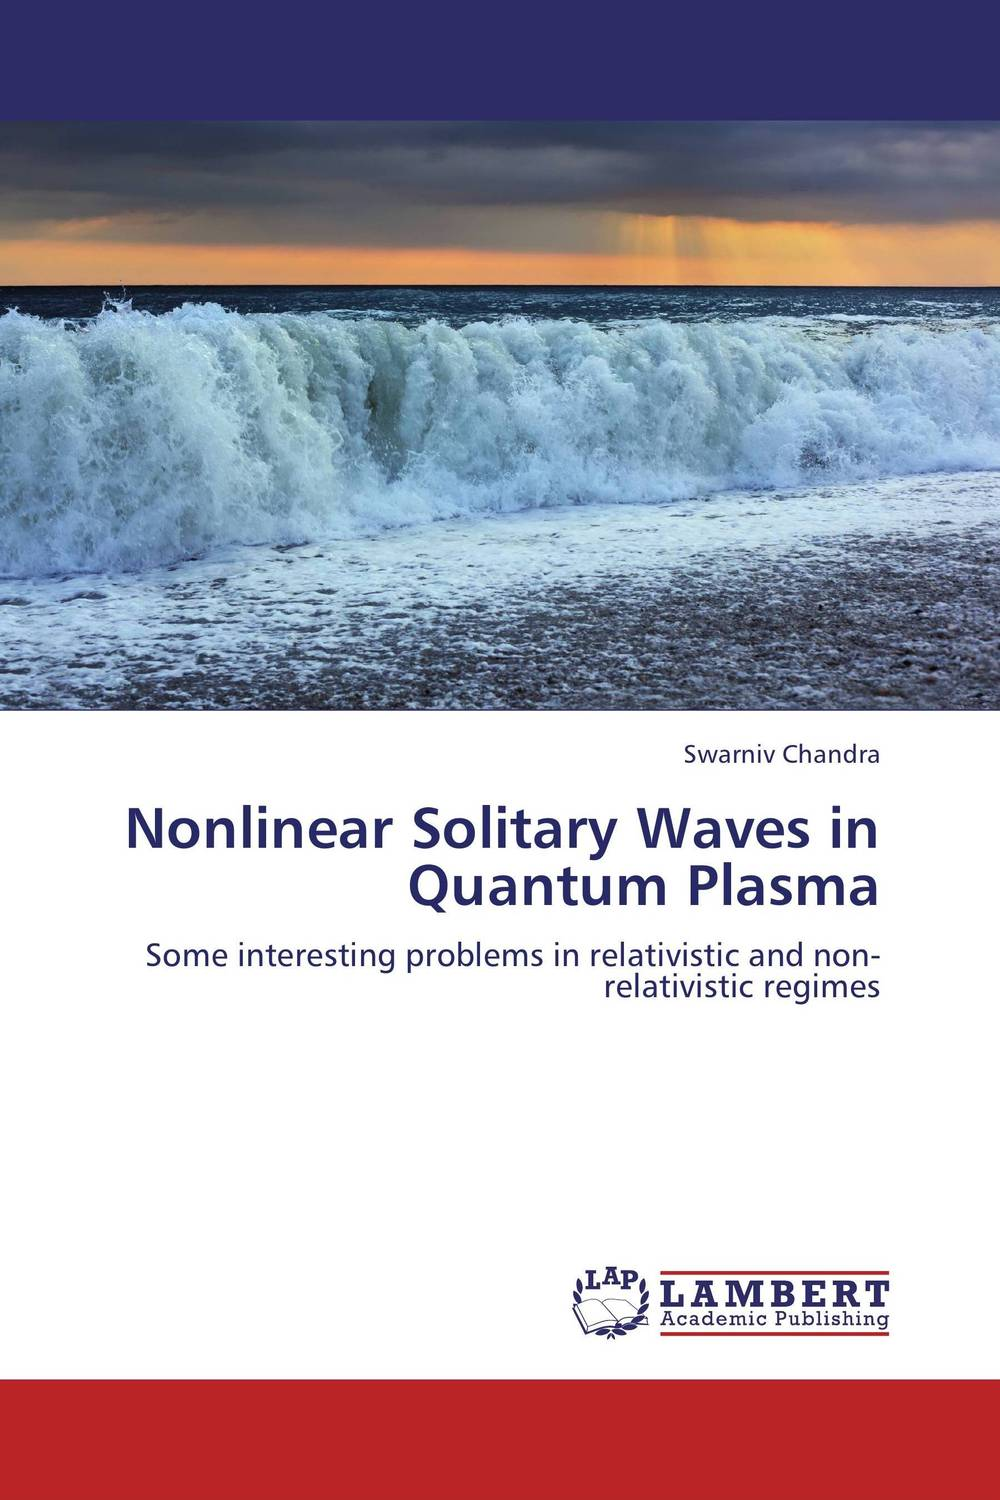 Nonlinear Solitary Waves in Quantum Plasma text book of plasma physics